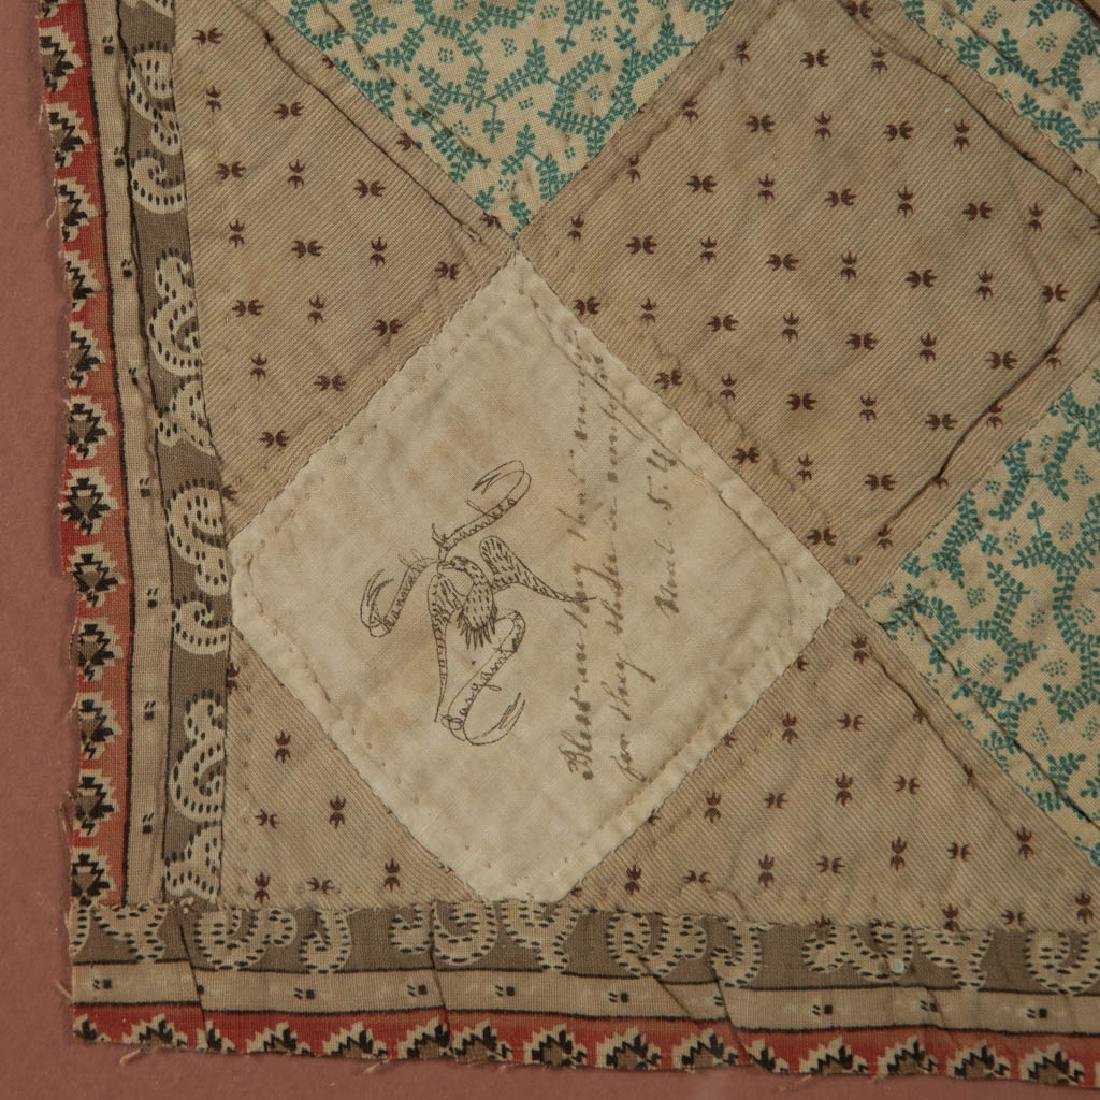 NEW JERSEY INSCRIBED PIECED QUILT FRAGMENTS - 3